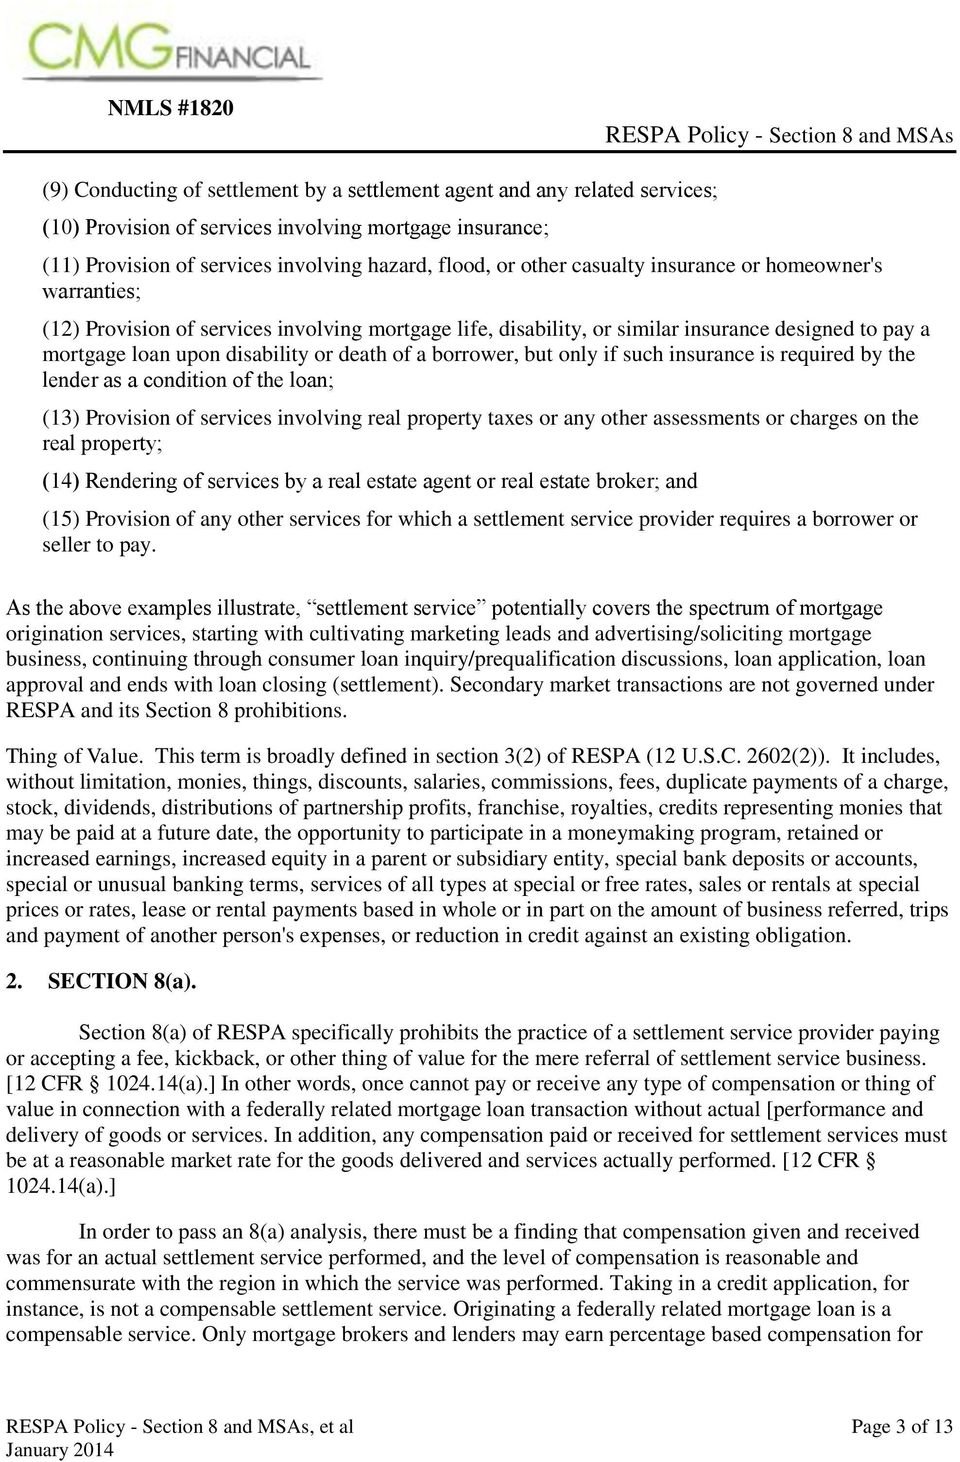 NMLS #1820 RESPA Policy - Section 8 and MSAs - PDF